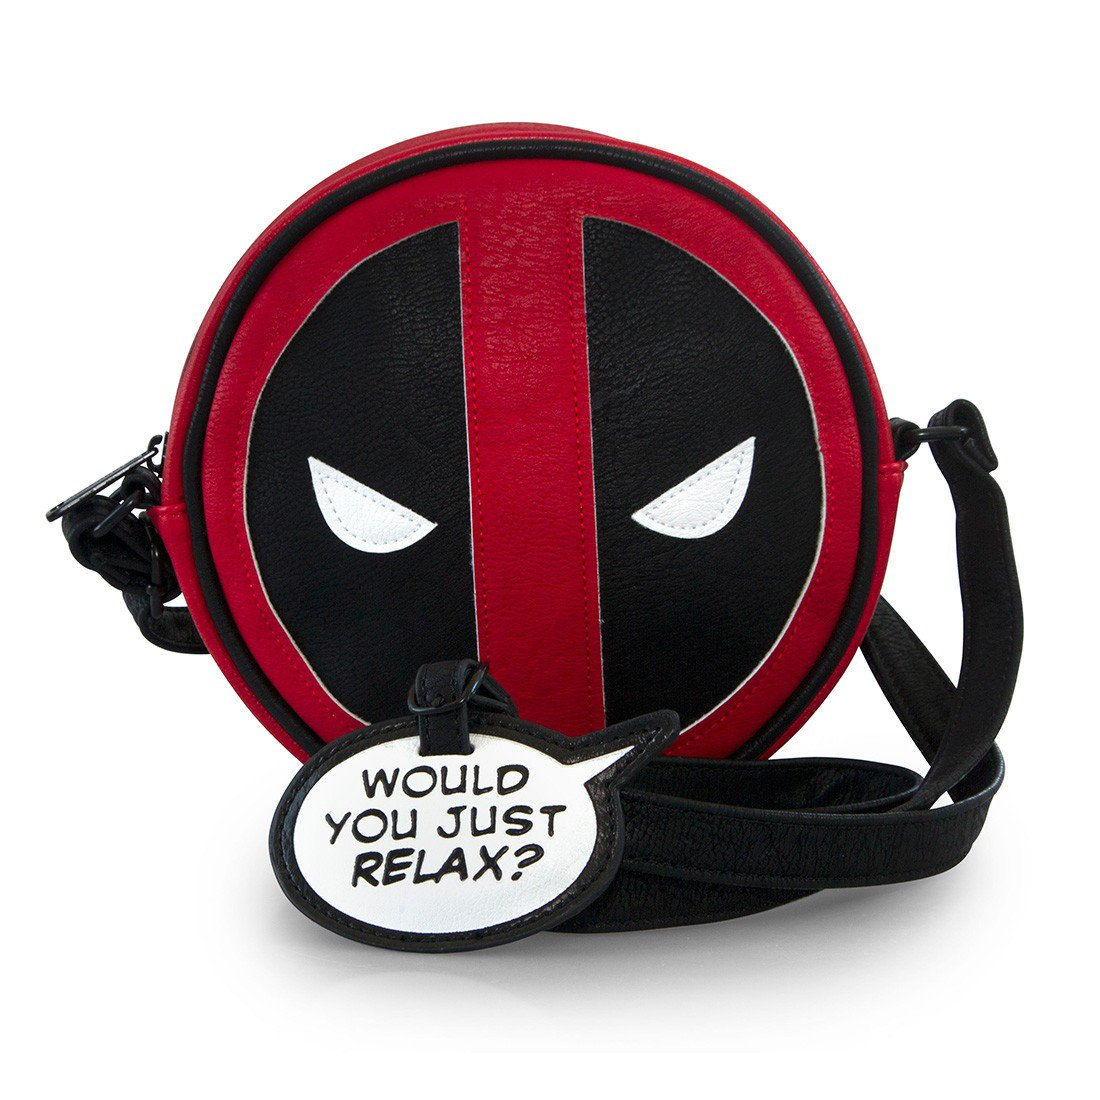 RT & follow @Loungefly for the chance to win this #Deadpool crossbody bag!